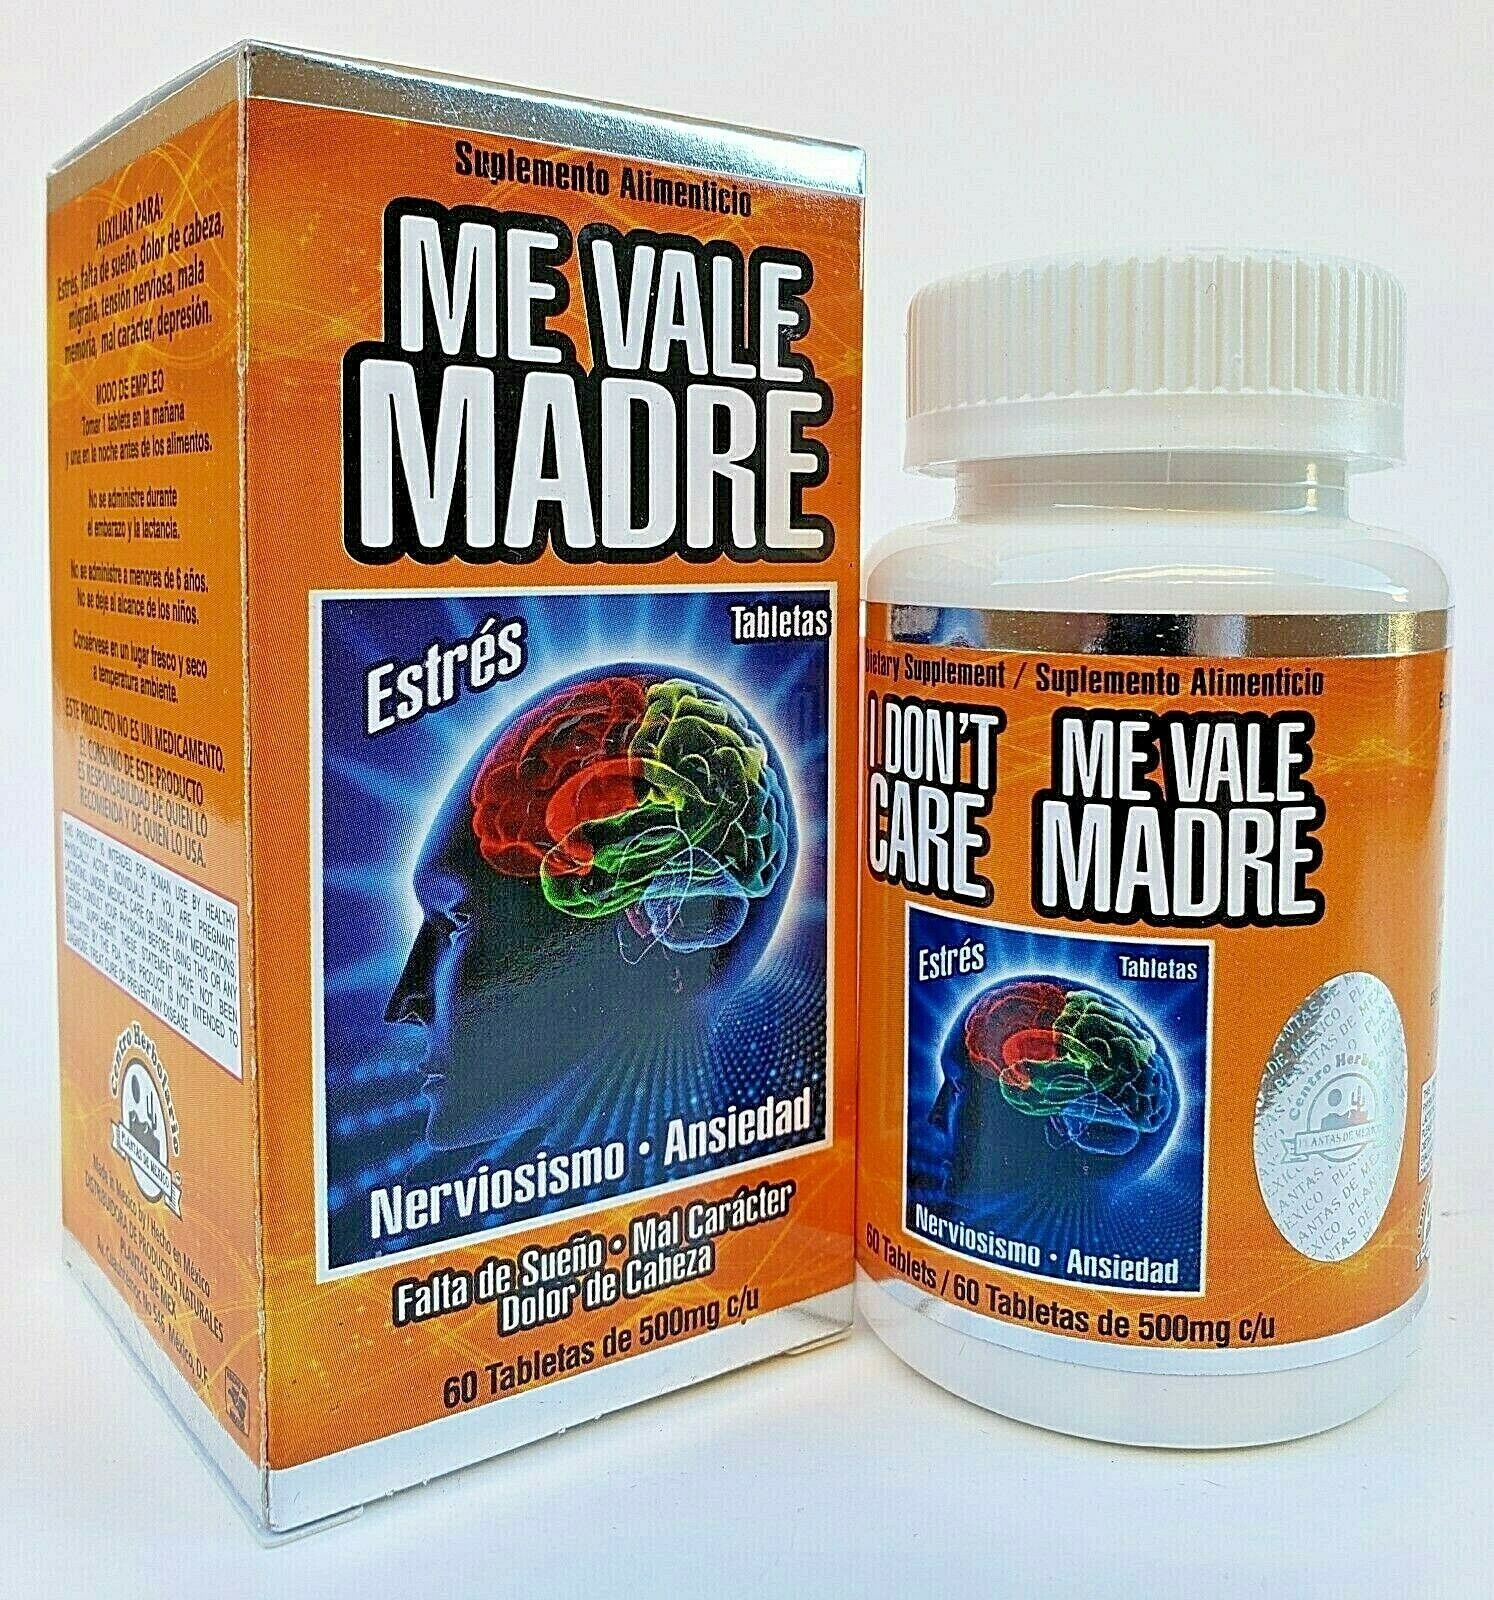 ME VALE MADRE 60 Tablets 500 mg each Support Estres Depresion Ansiedad 3